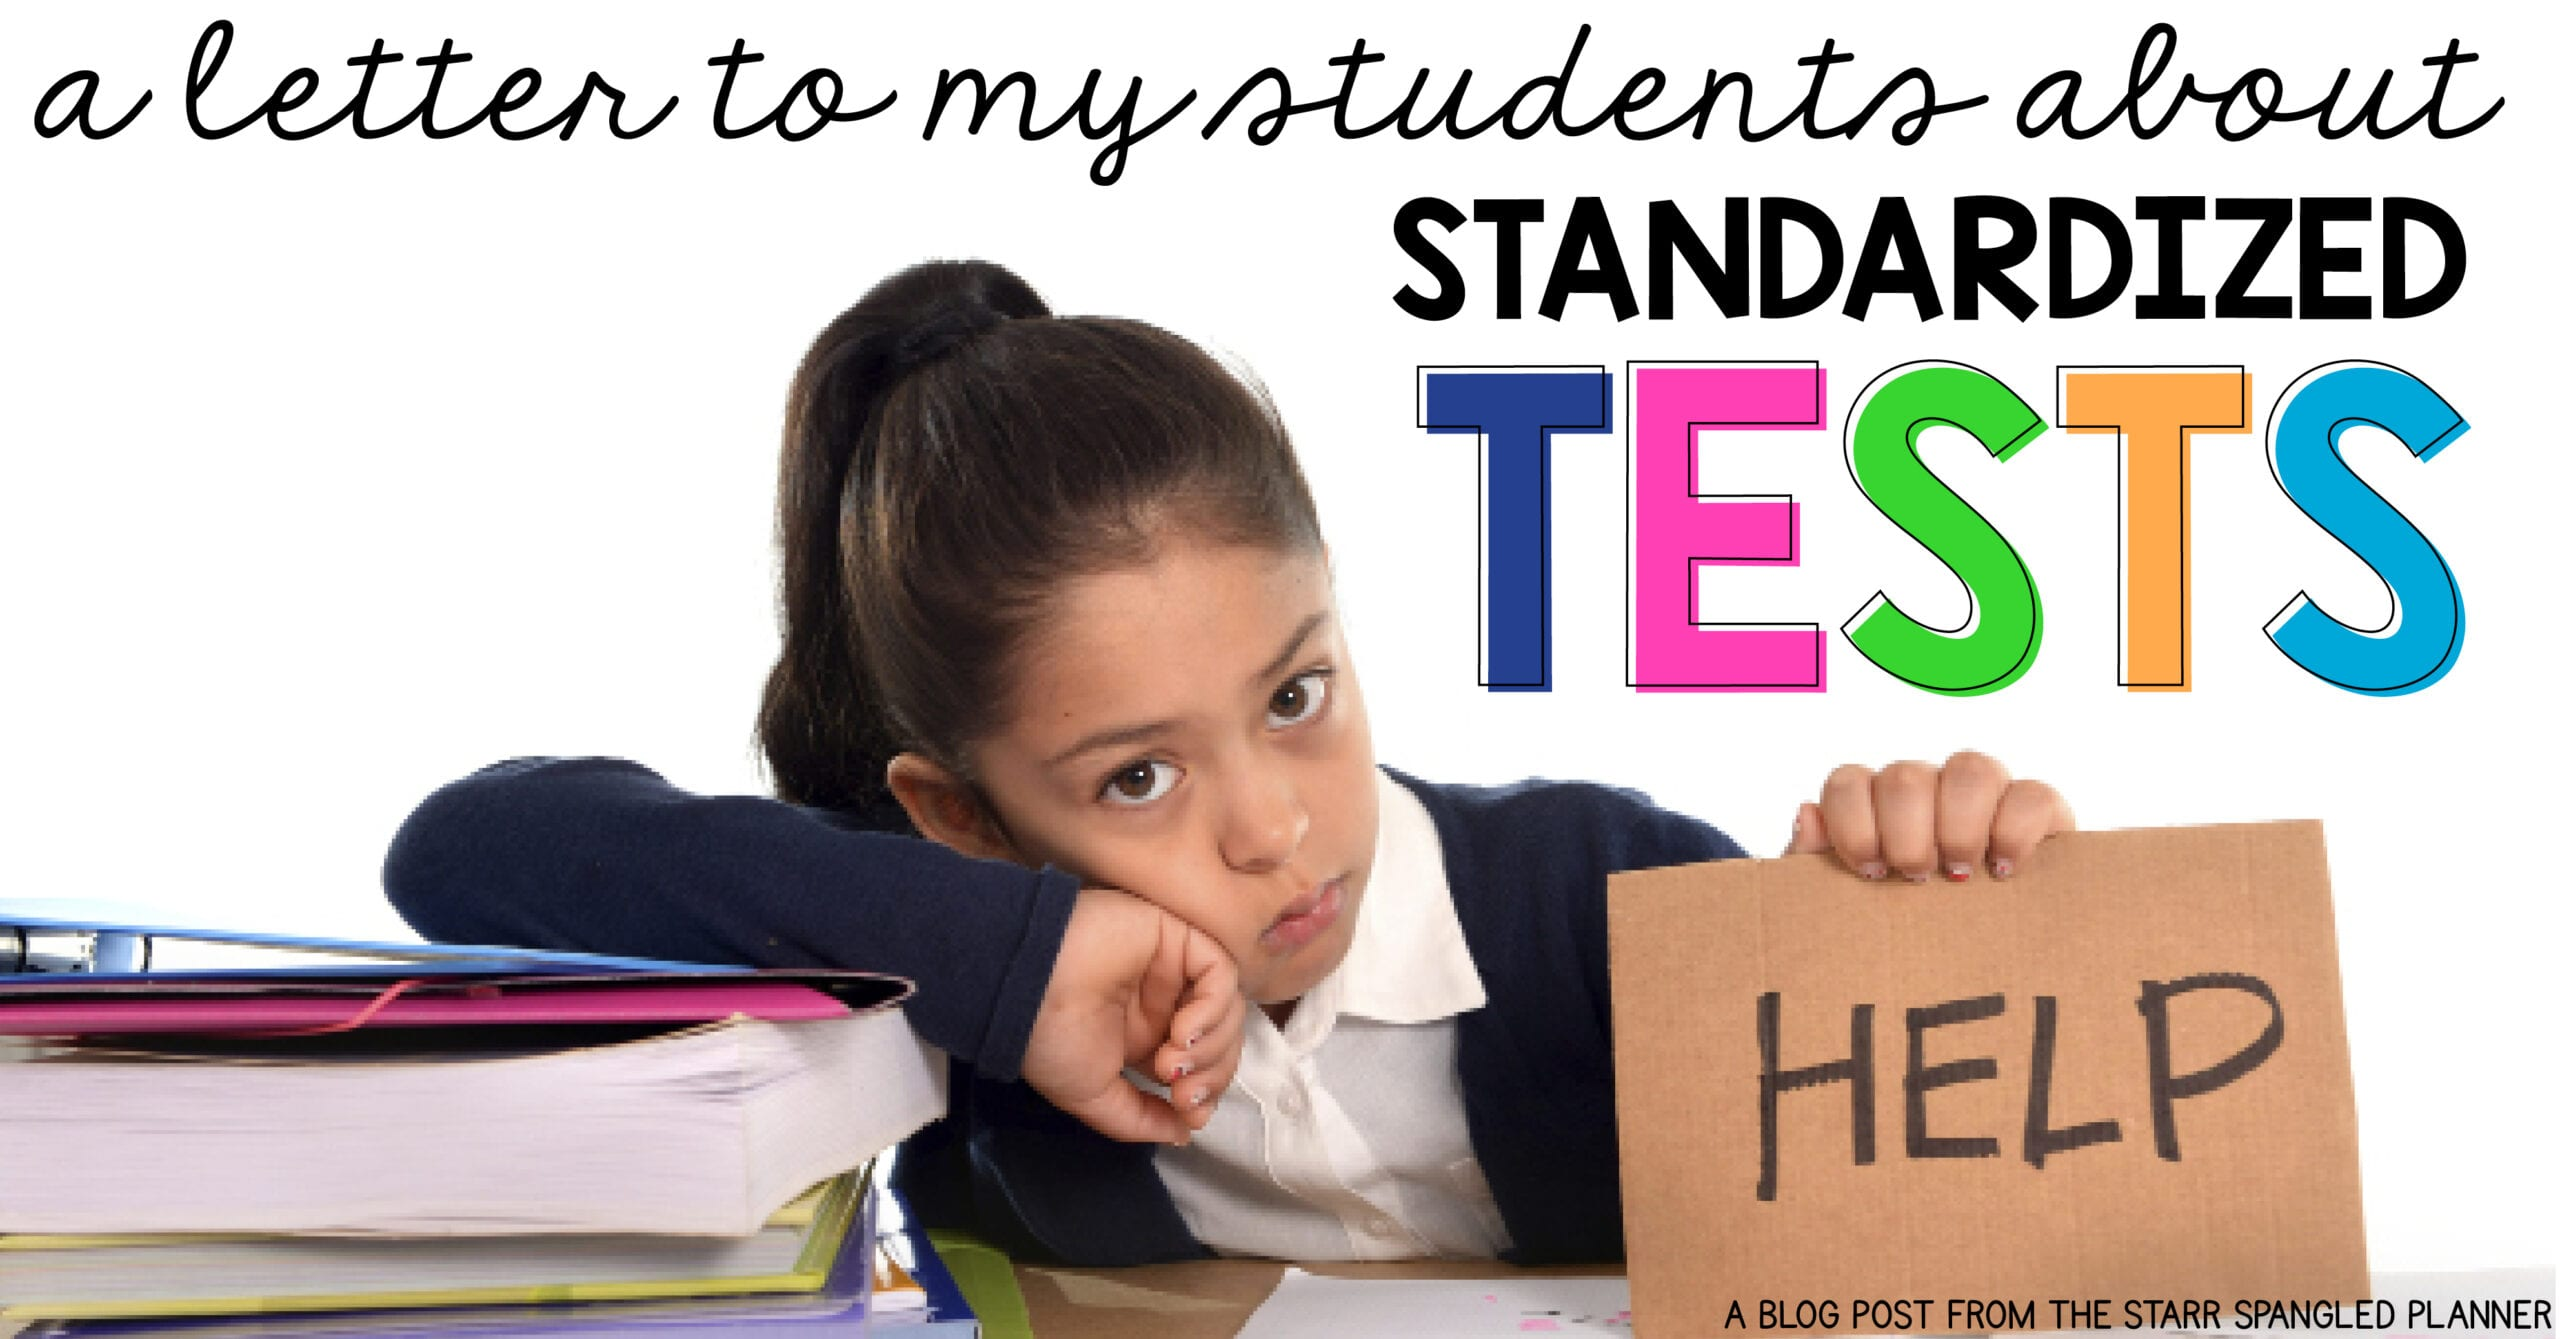 An Open Letter to my Students About Standardized Tests